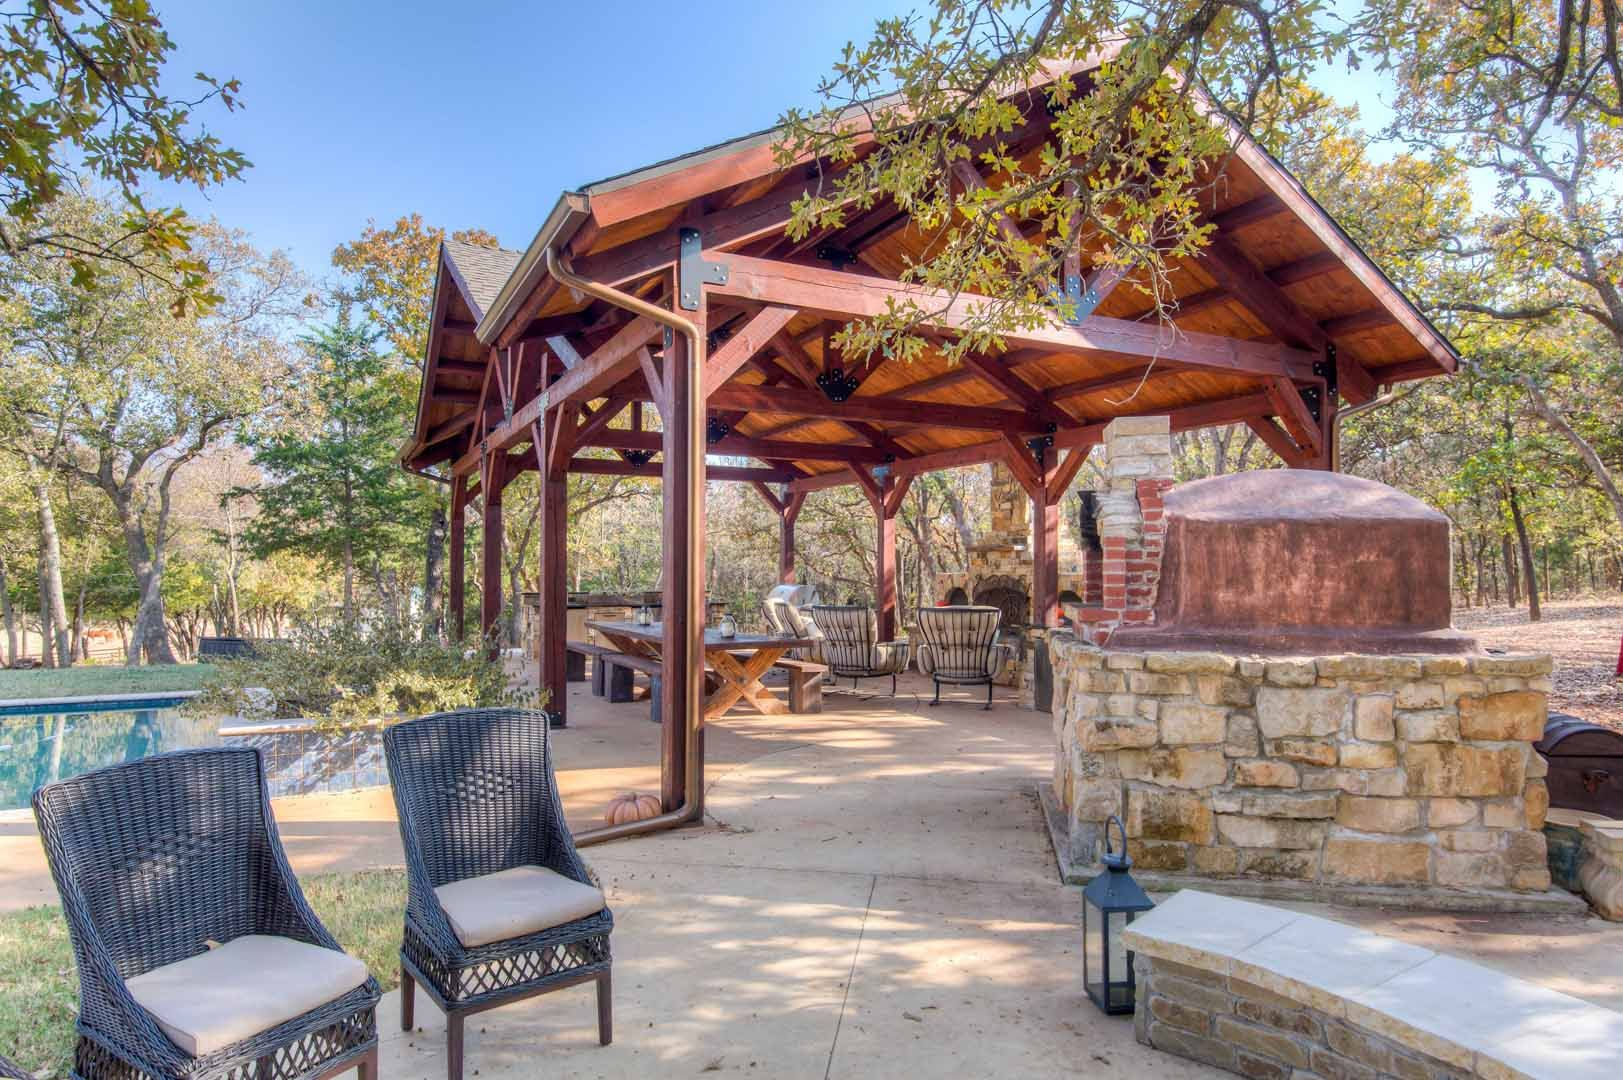 This Post And Beam Pavilion In Oklahoma Covers An Outdoor Kitchen And Sits Between A Pool And Outdoor Fireplace Pavilion Outdoor Outdoor Fireplace